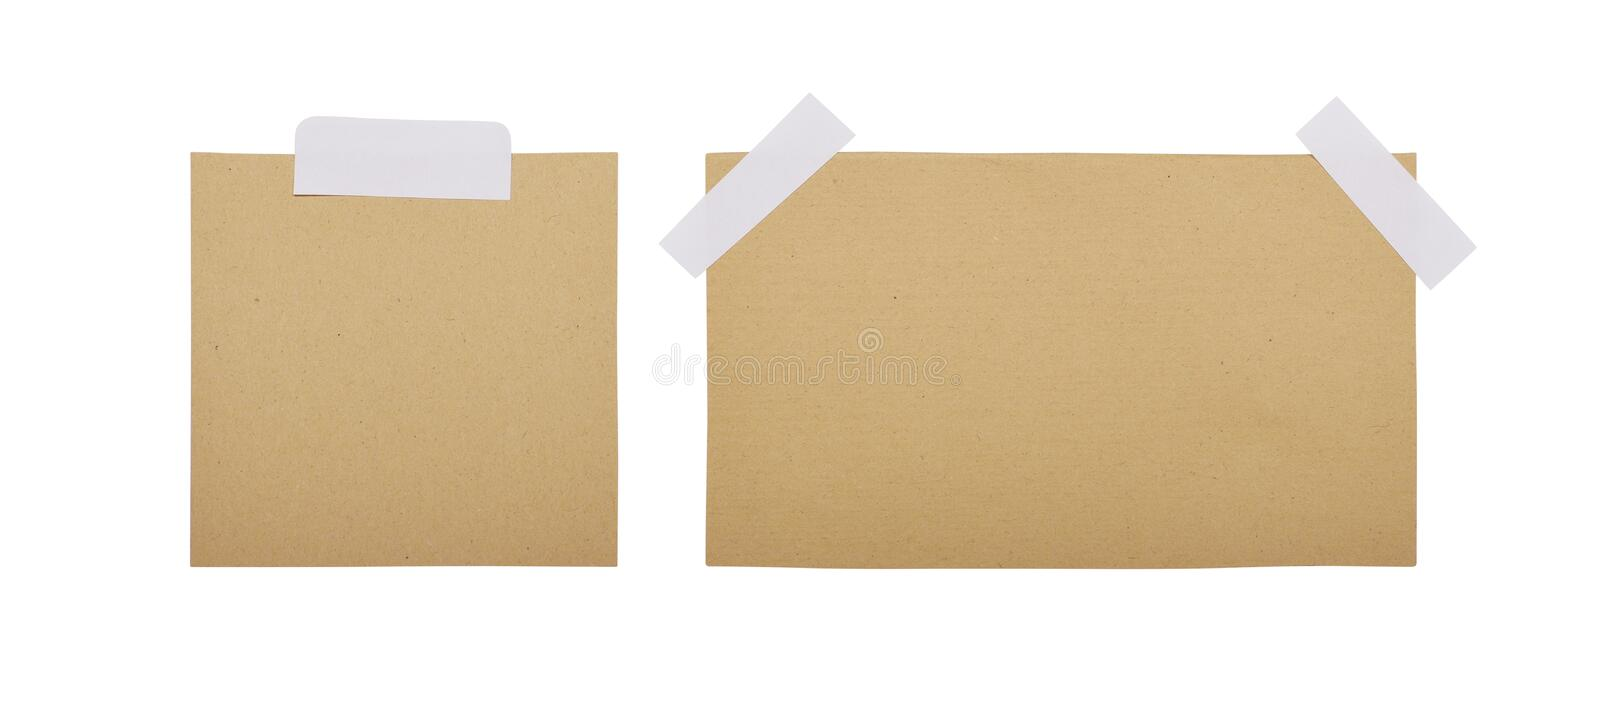 Brown note paper sticked royalty free stock photo